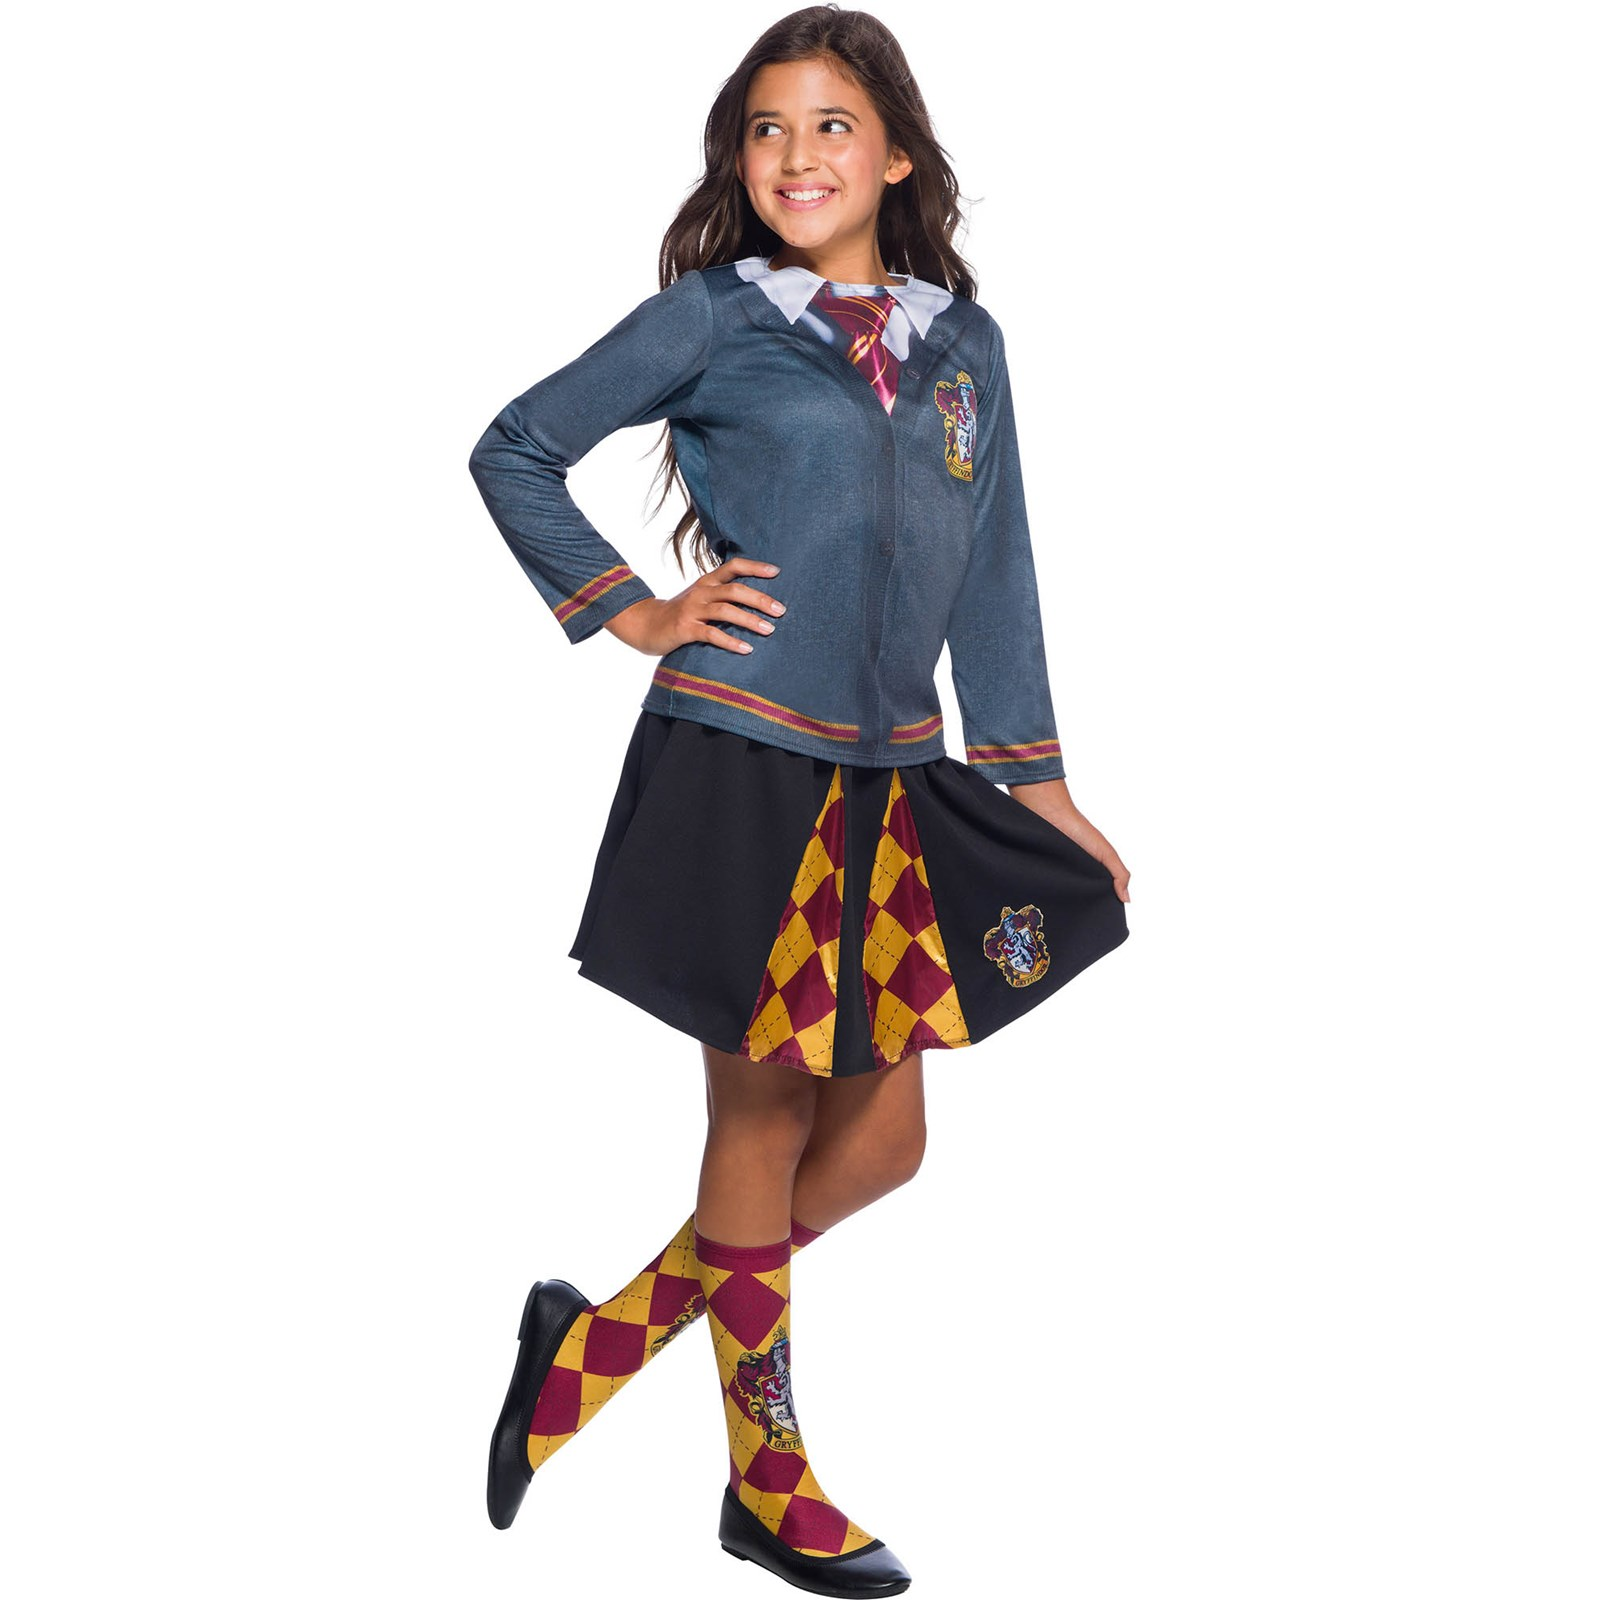 The Wizarding World Of Harry Potter Child Gryffindor Costume Top